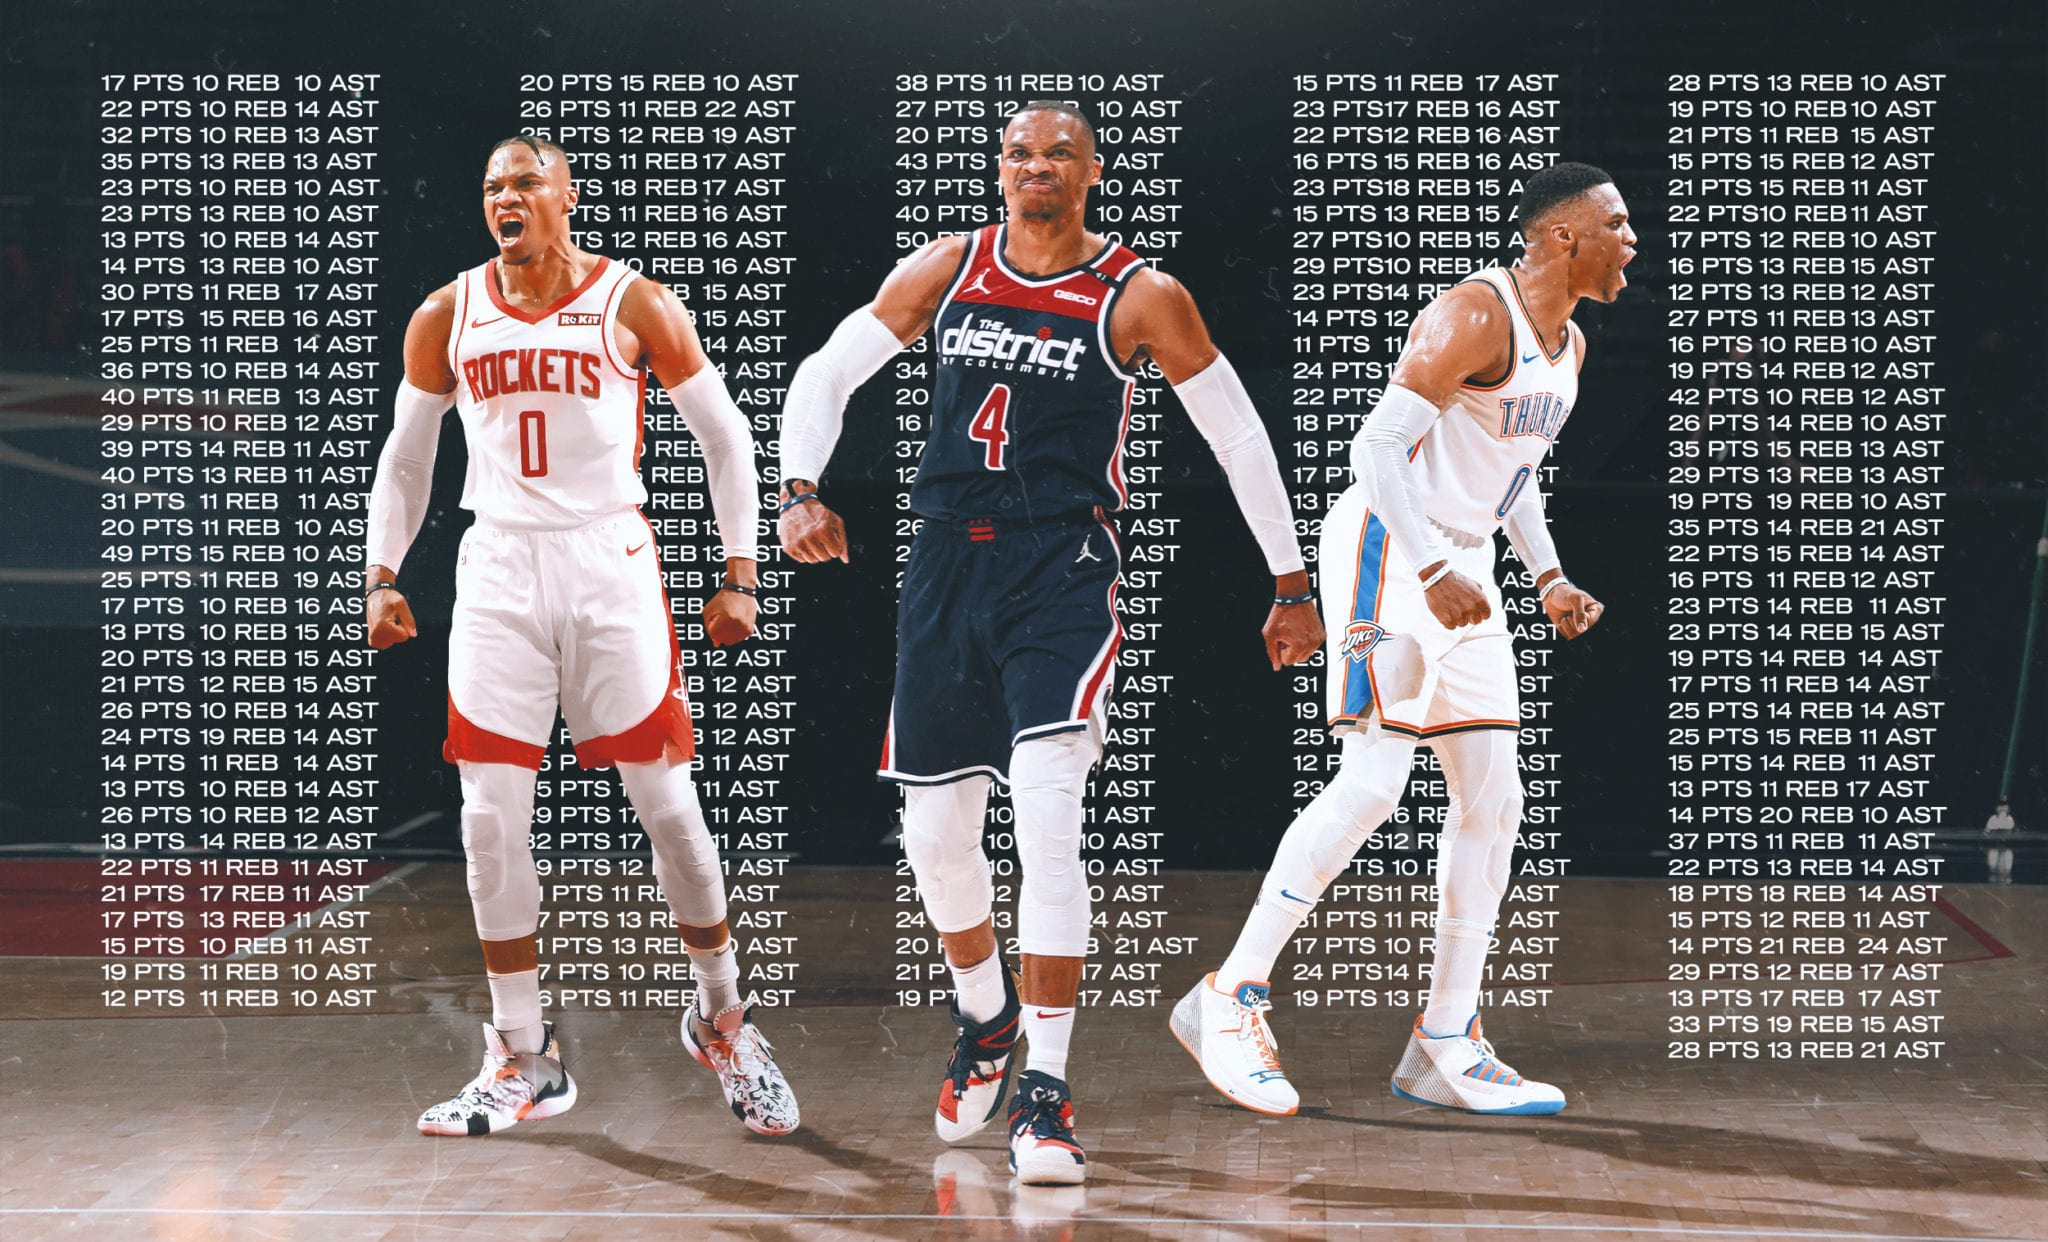 The Most Insane Records and Stats From Russell Westbrook's Career